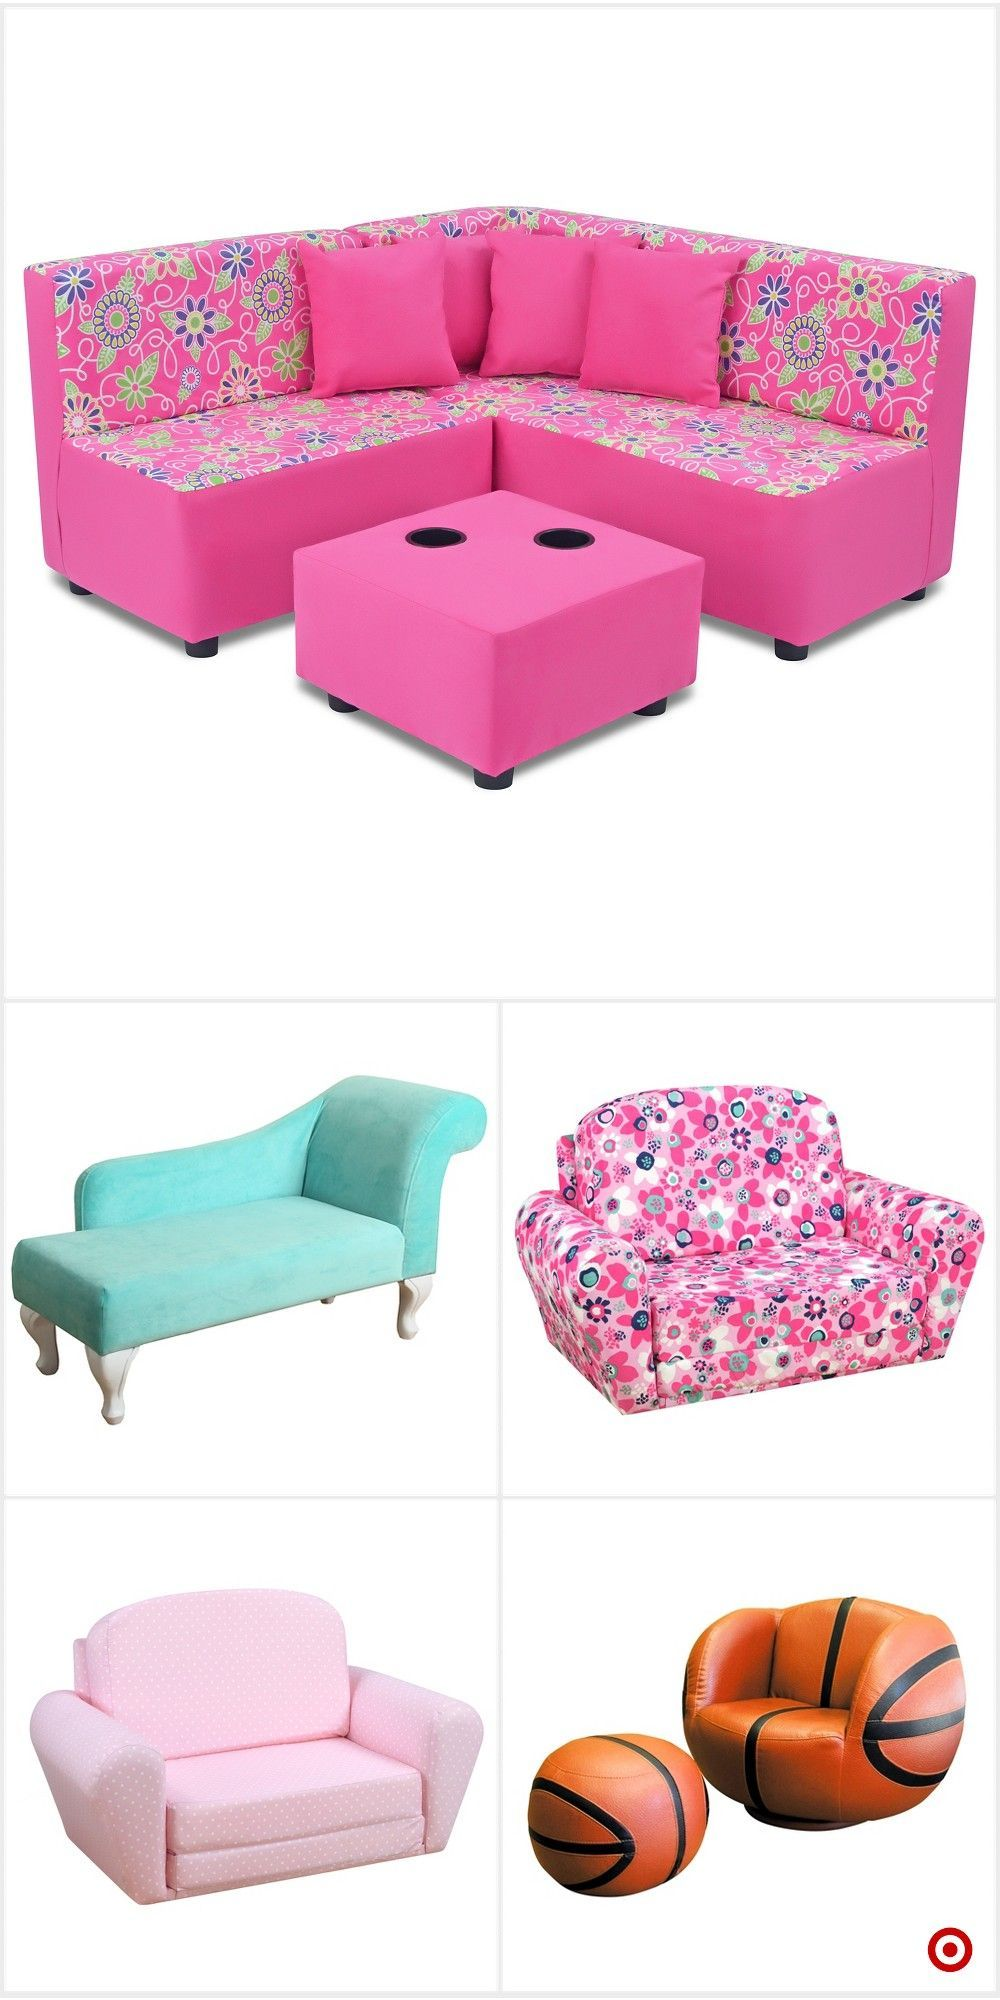 Playroom Ideas For 9 Year Old Playroomideas Playroomideasforteen Kids Couch Kids Furniture Sets Kids Sofa